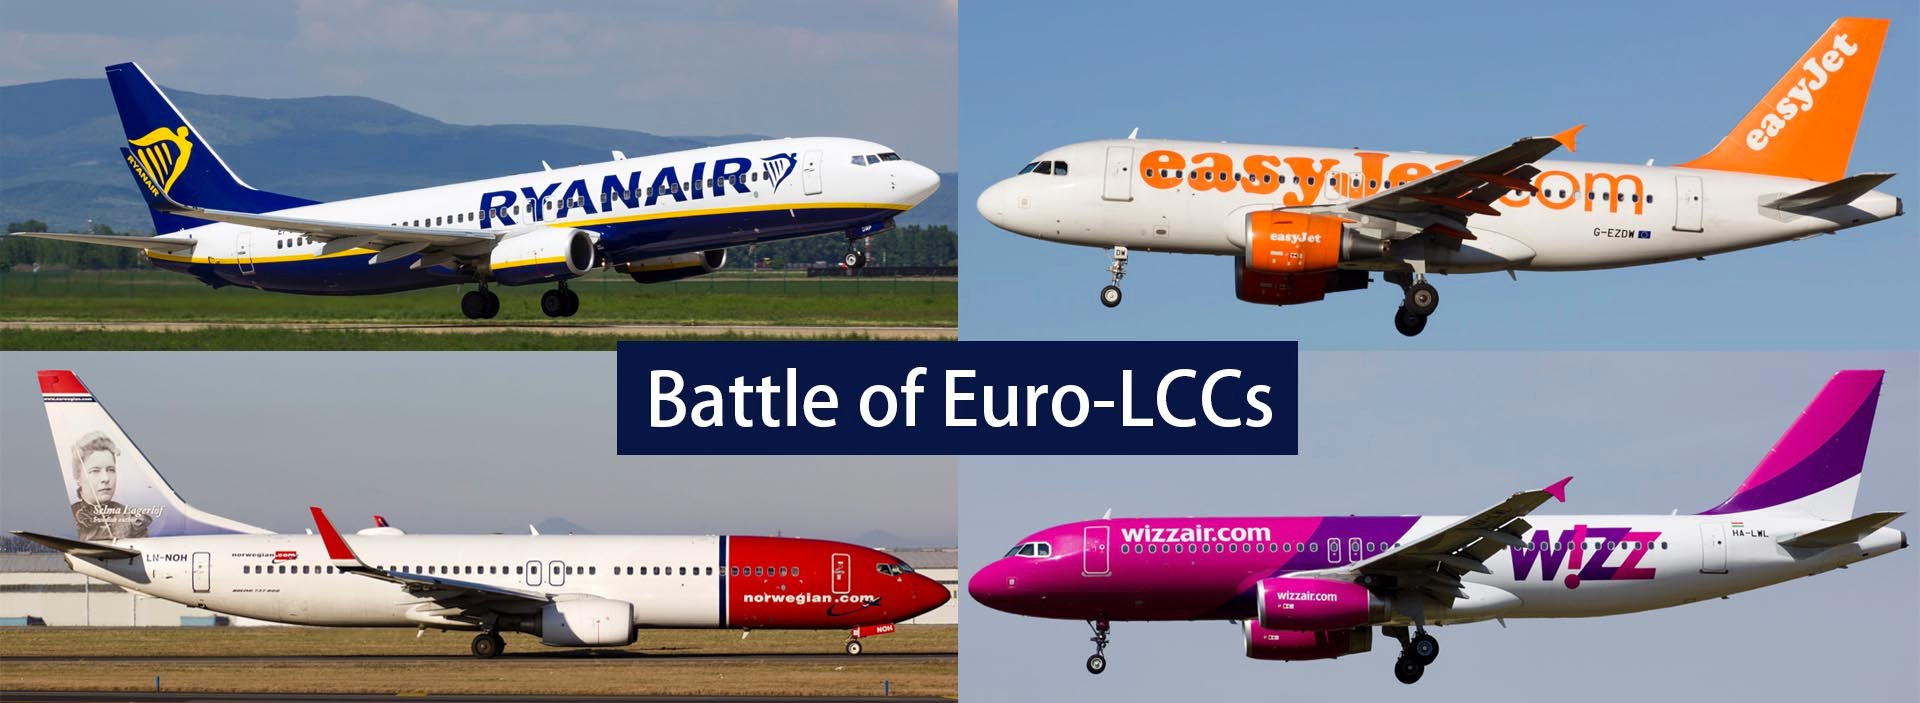 Battle of Euro-LCCs: Ryanair vs. easyJet vs. Norwegian vs. Wizz Air